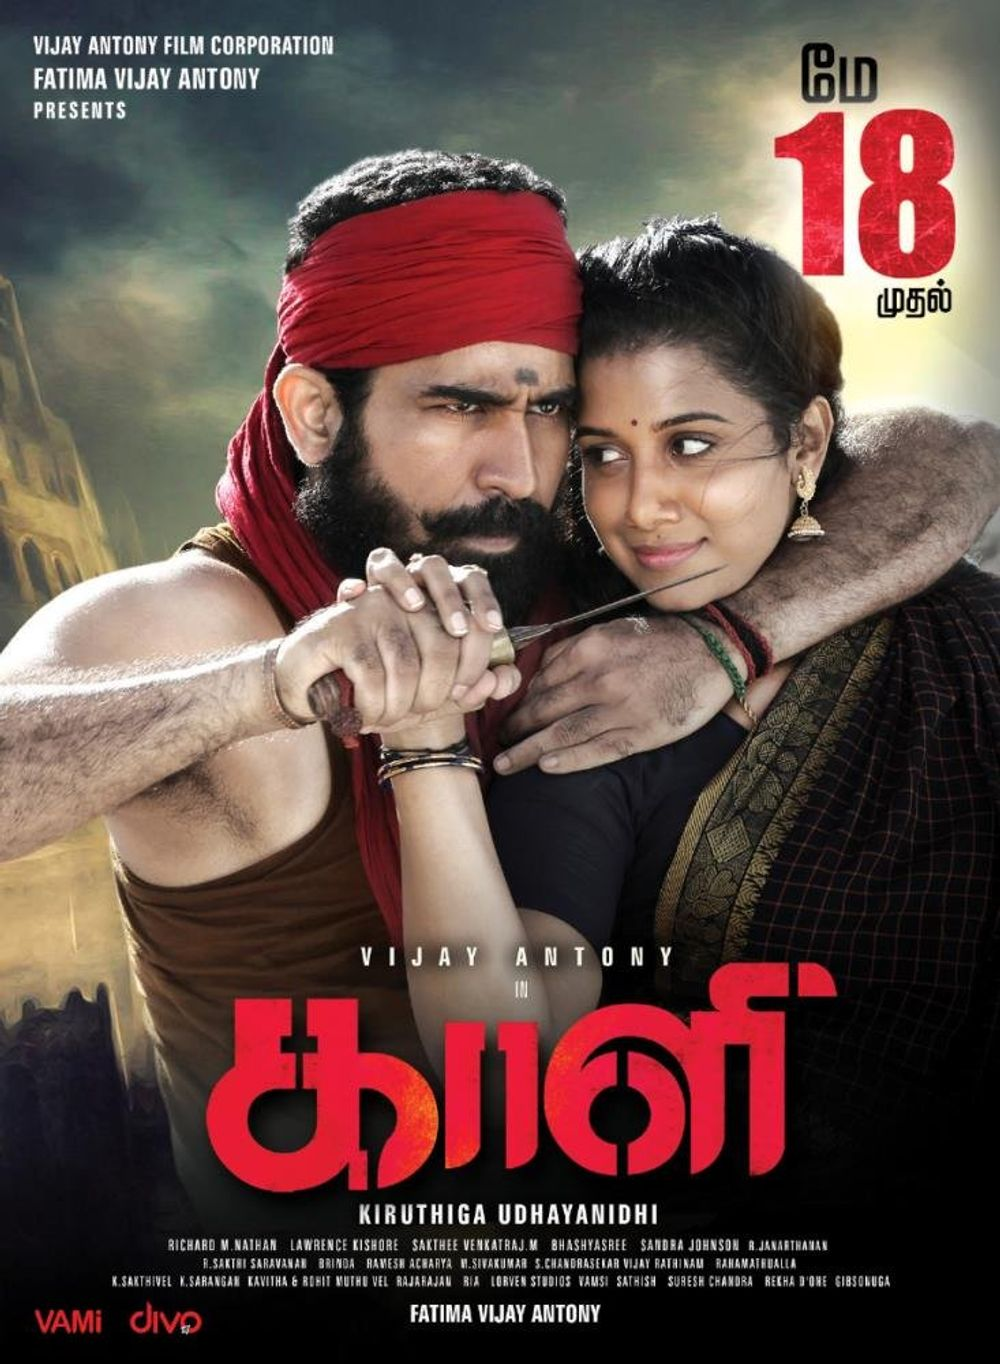 Kaali (Jawab The Justice) 2018 Hindi Dual Audio 720p UNCUT HDRip ESubs 1.4GB Download